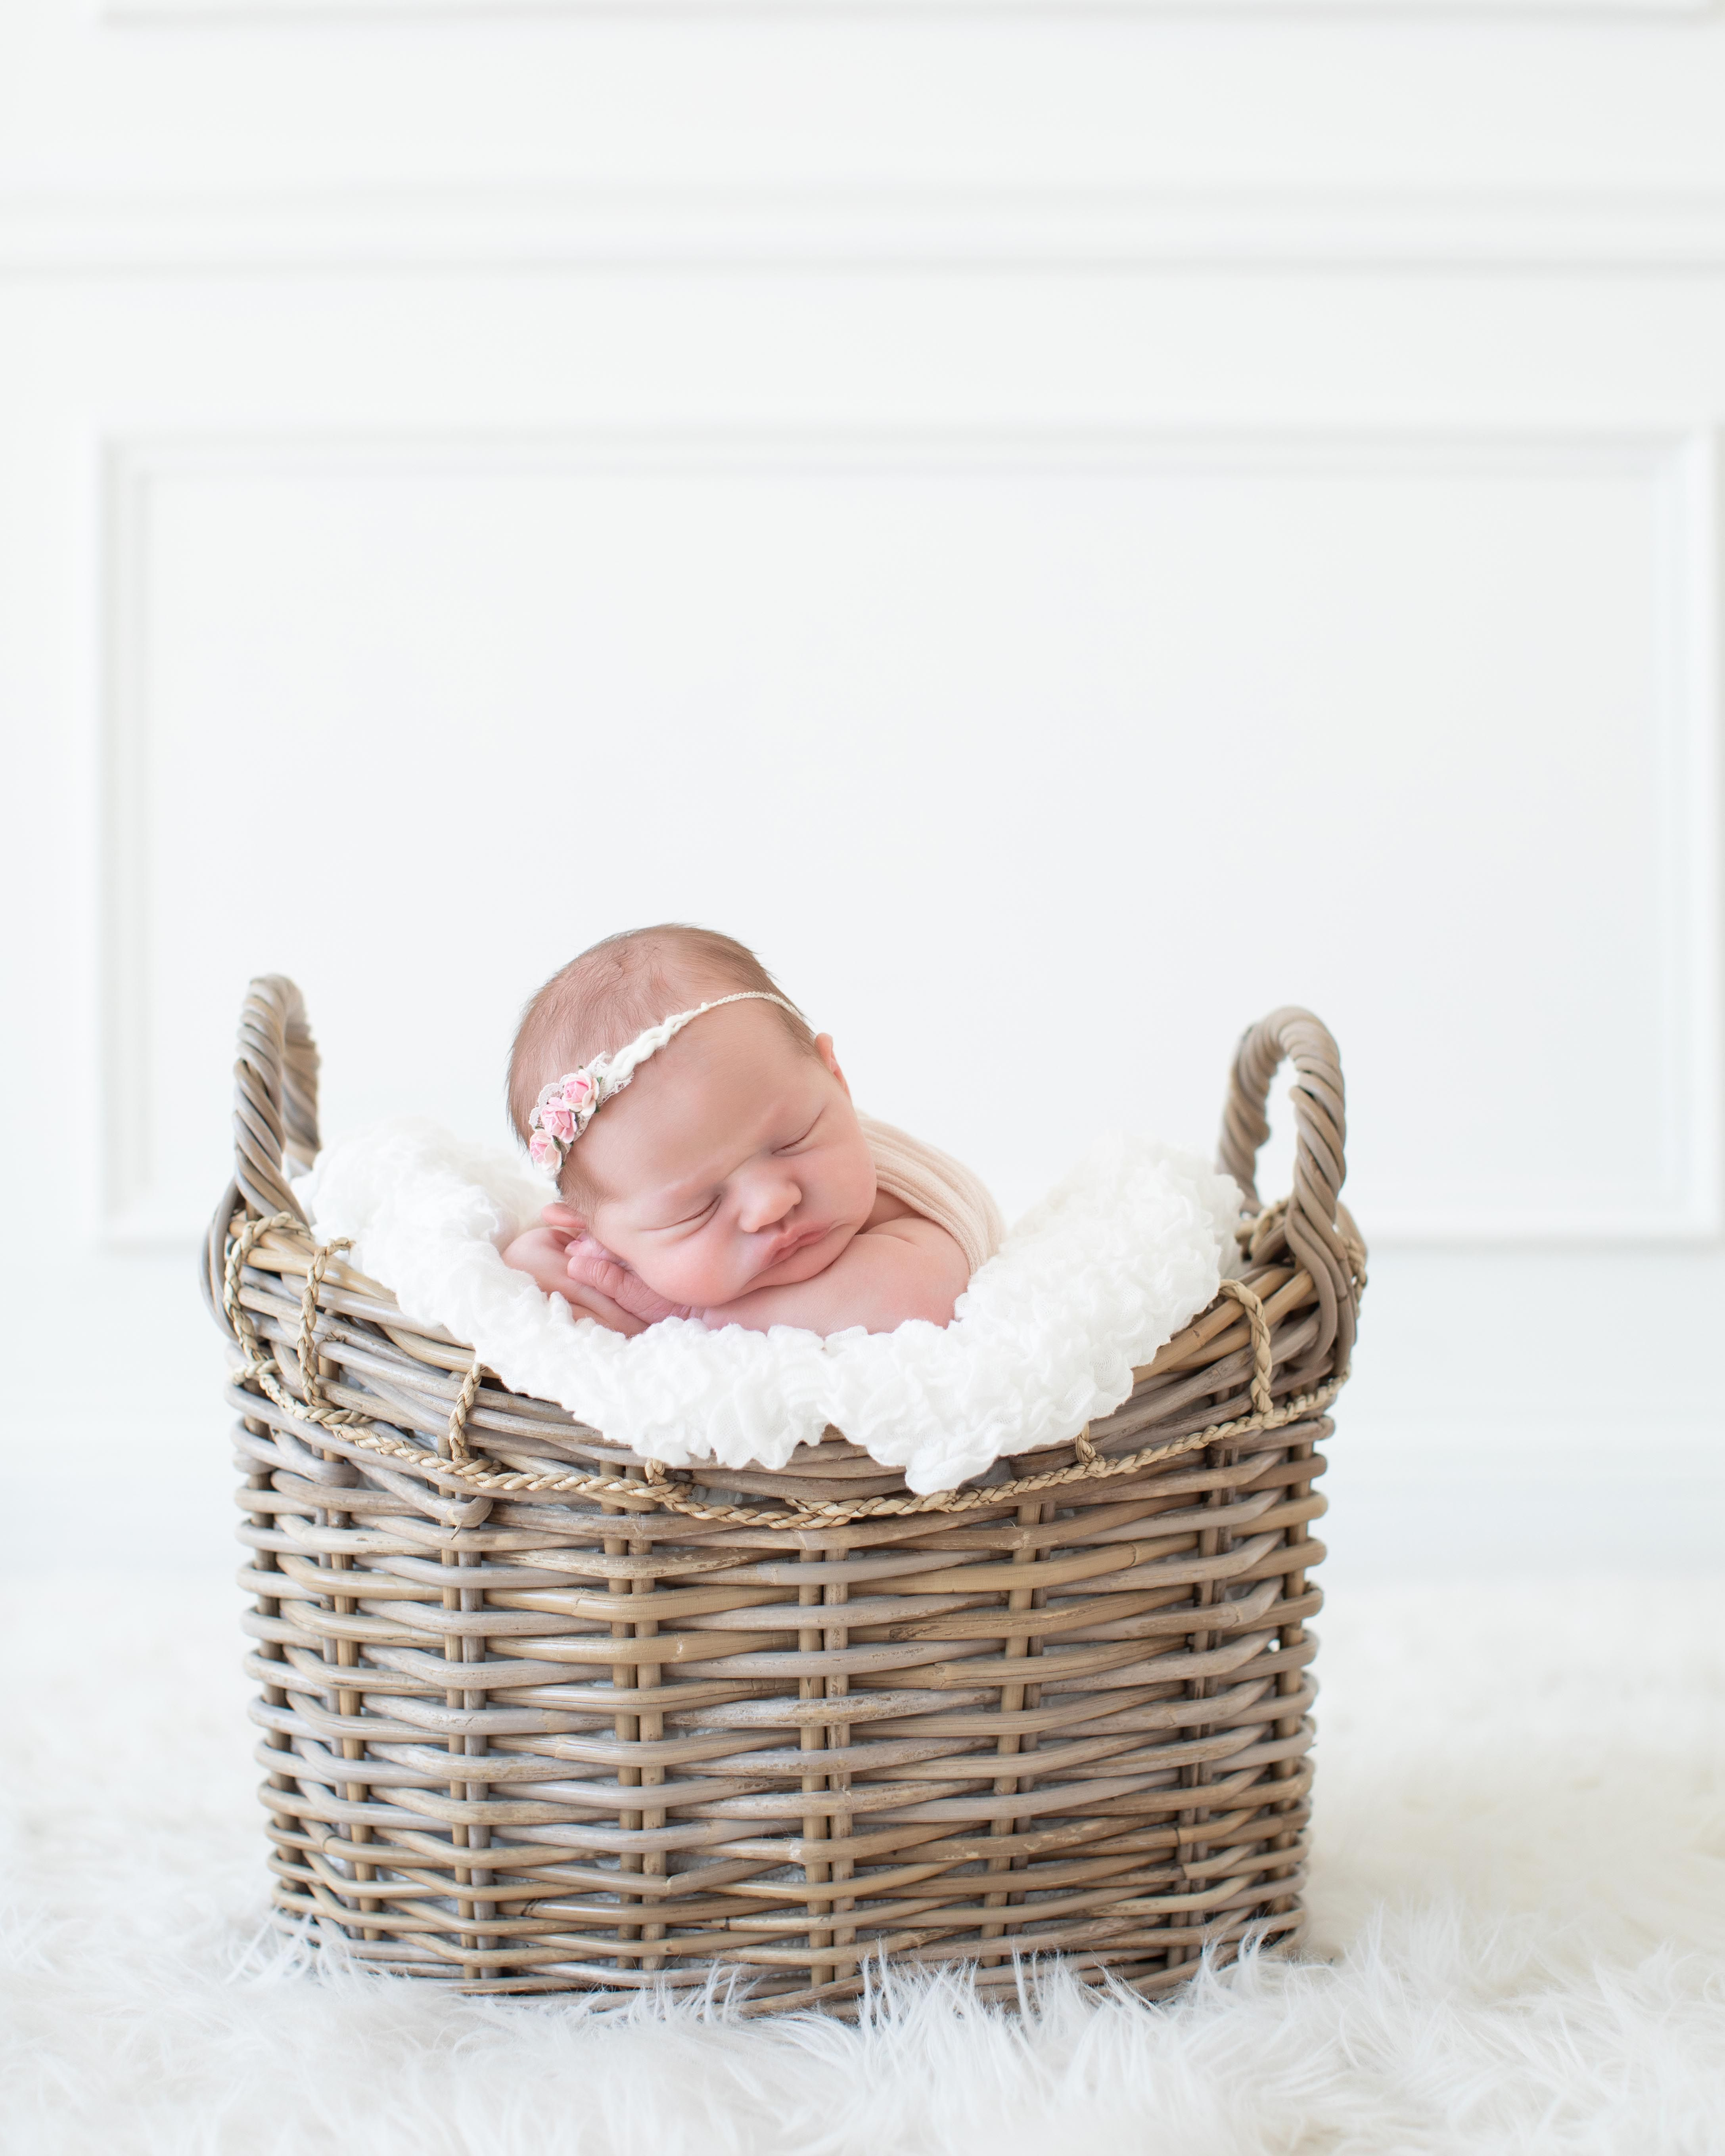 Babies in baskets newborn babies newborn baby photography newborn props newborn photo session